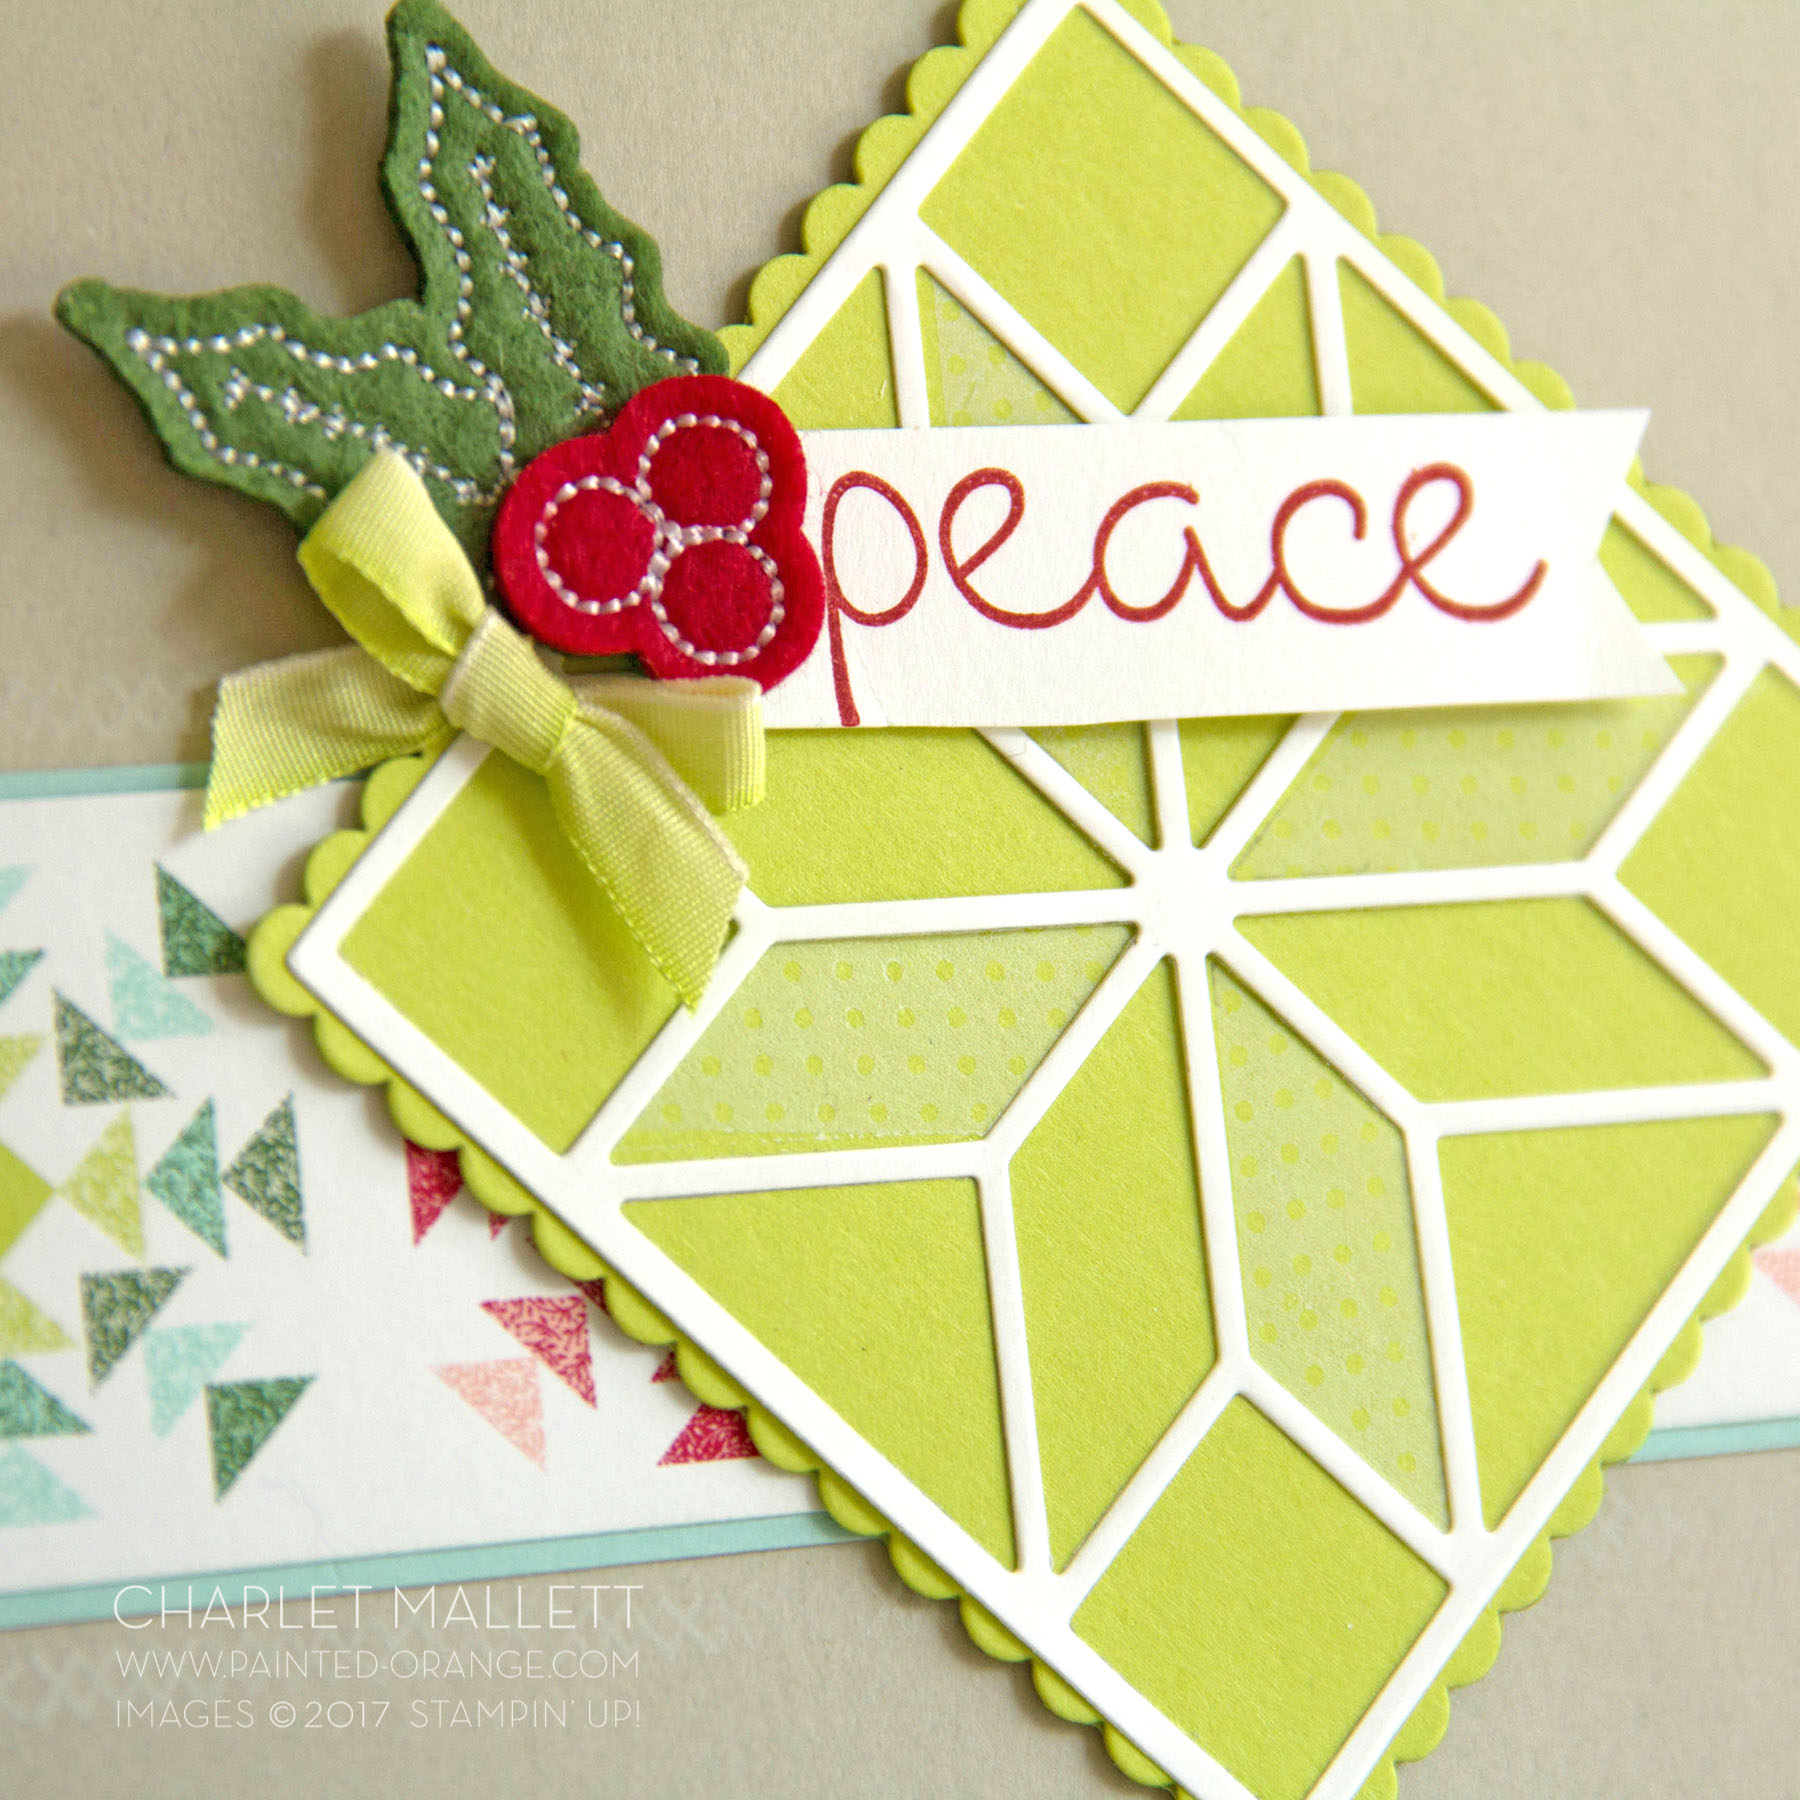 Peace Christmas Quilt - Charlet Mallett - Stampin' Up!